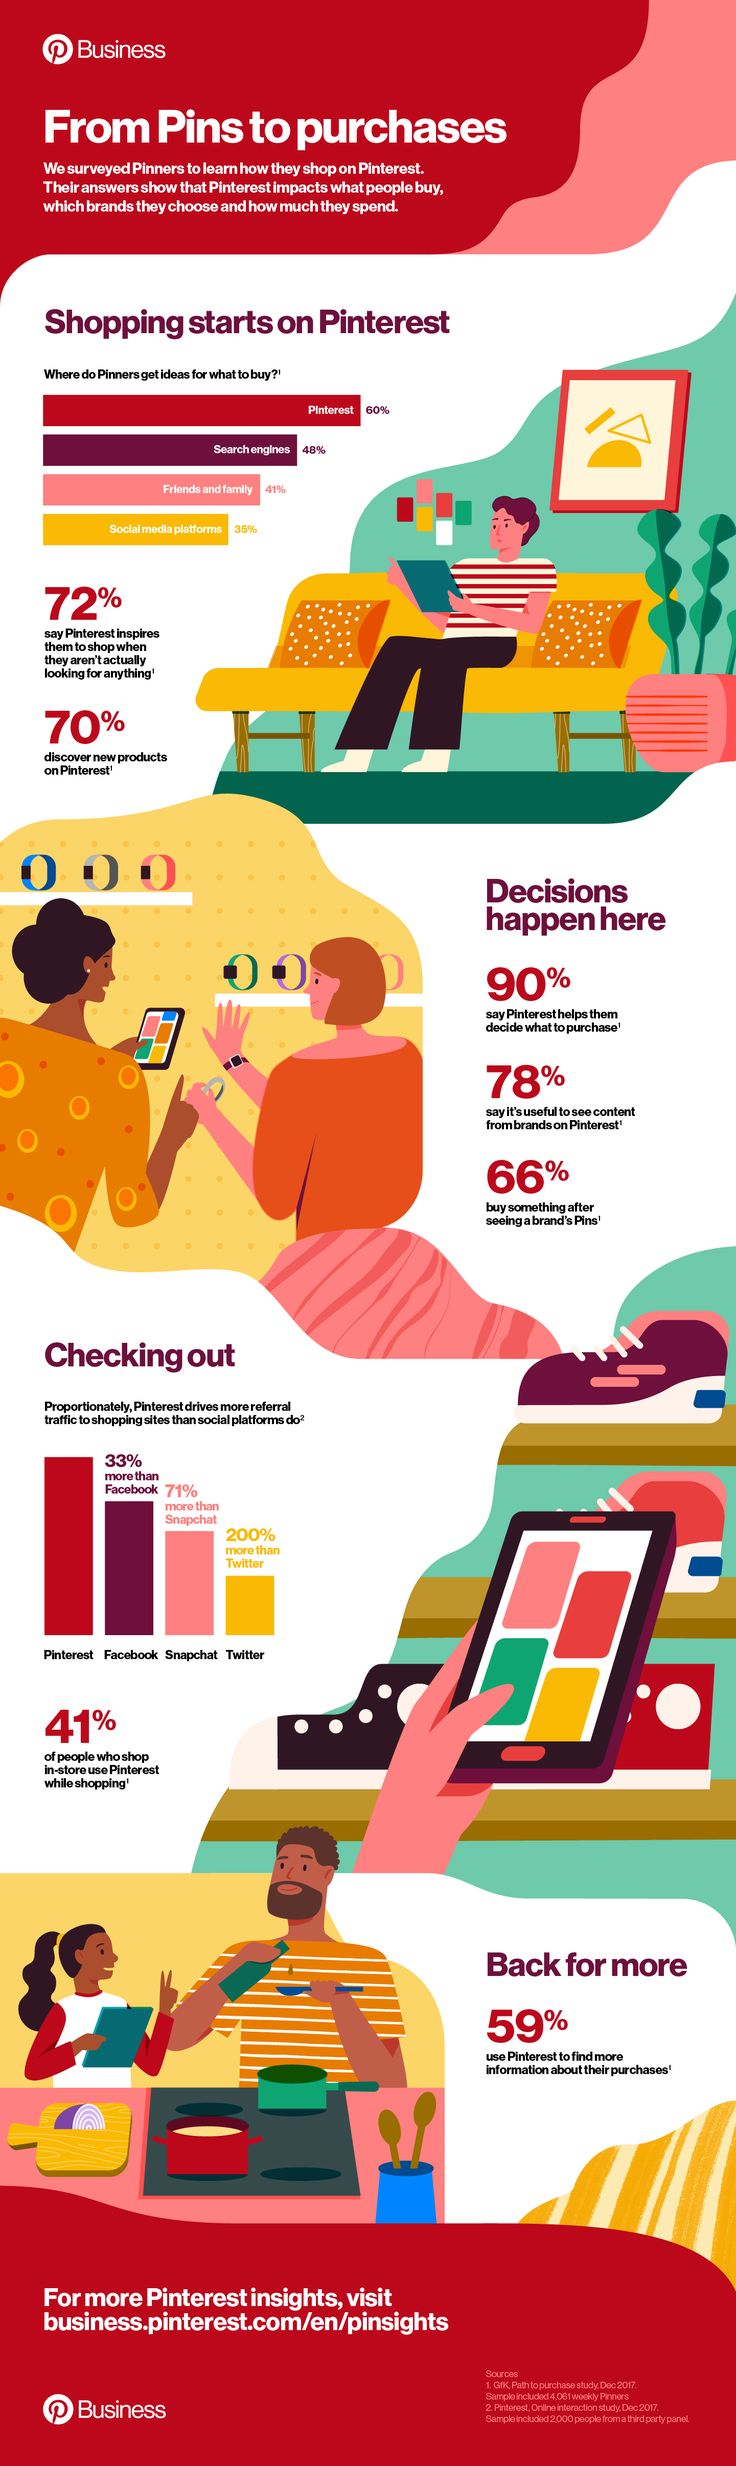 Path to purchase infographic | Pinterest Tips for Business